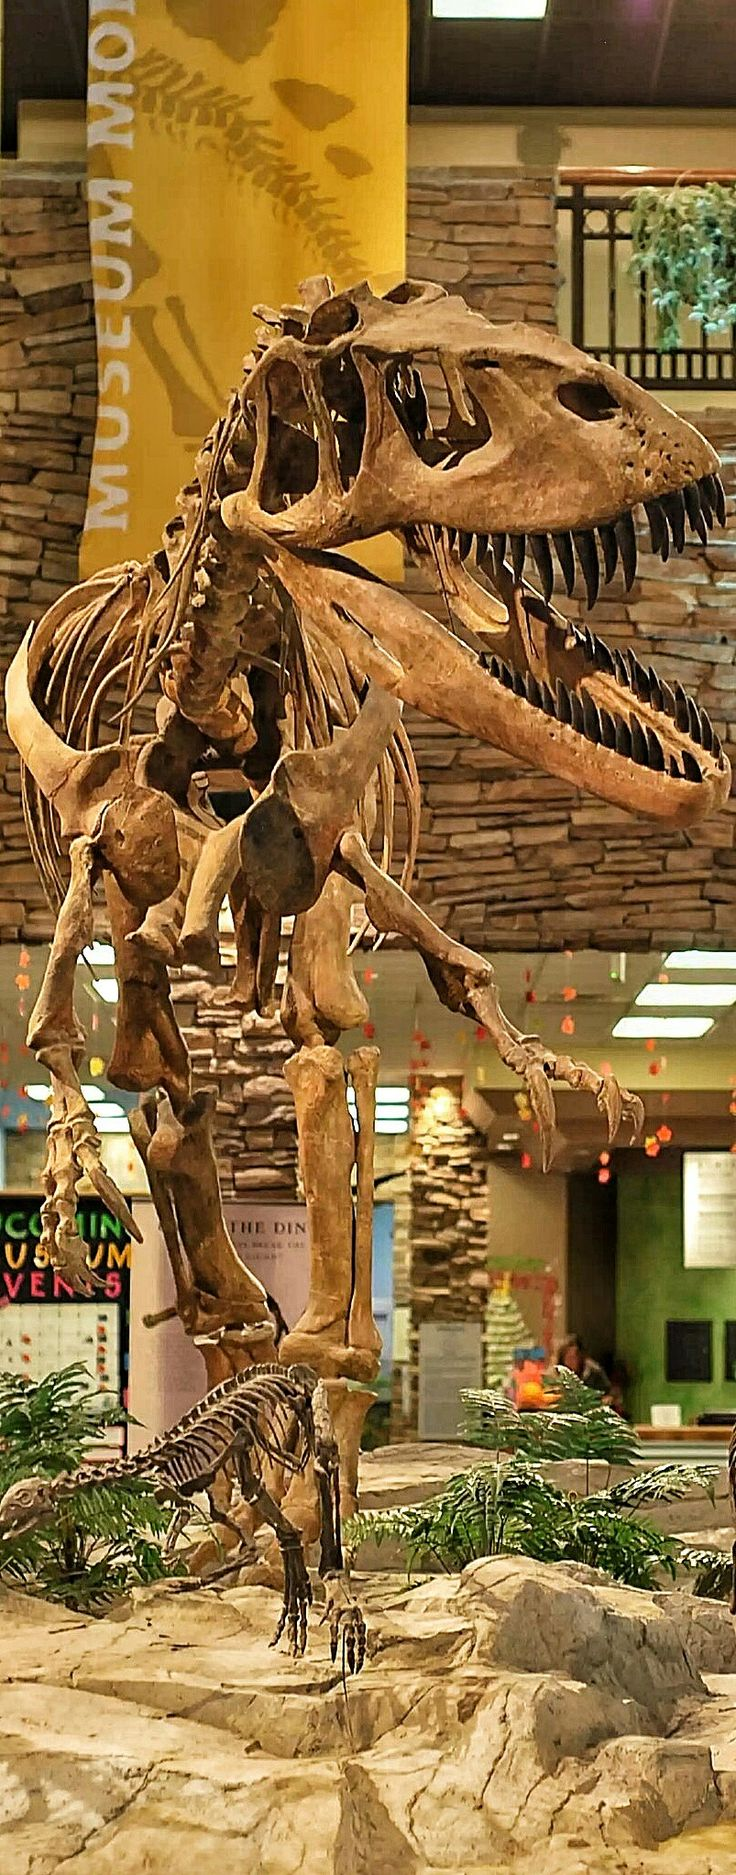 Torvosaurus is a genus of carnivorous megalosaurid theropod dinosaurs that lived approximately 153 to 148 million years ago during the later part of the Jurassic Period in what is now Colorado and Portugal. It contains two currently recognized species, Torvosaurus tanneri and Torvosaurus gurneyi